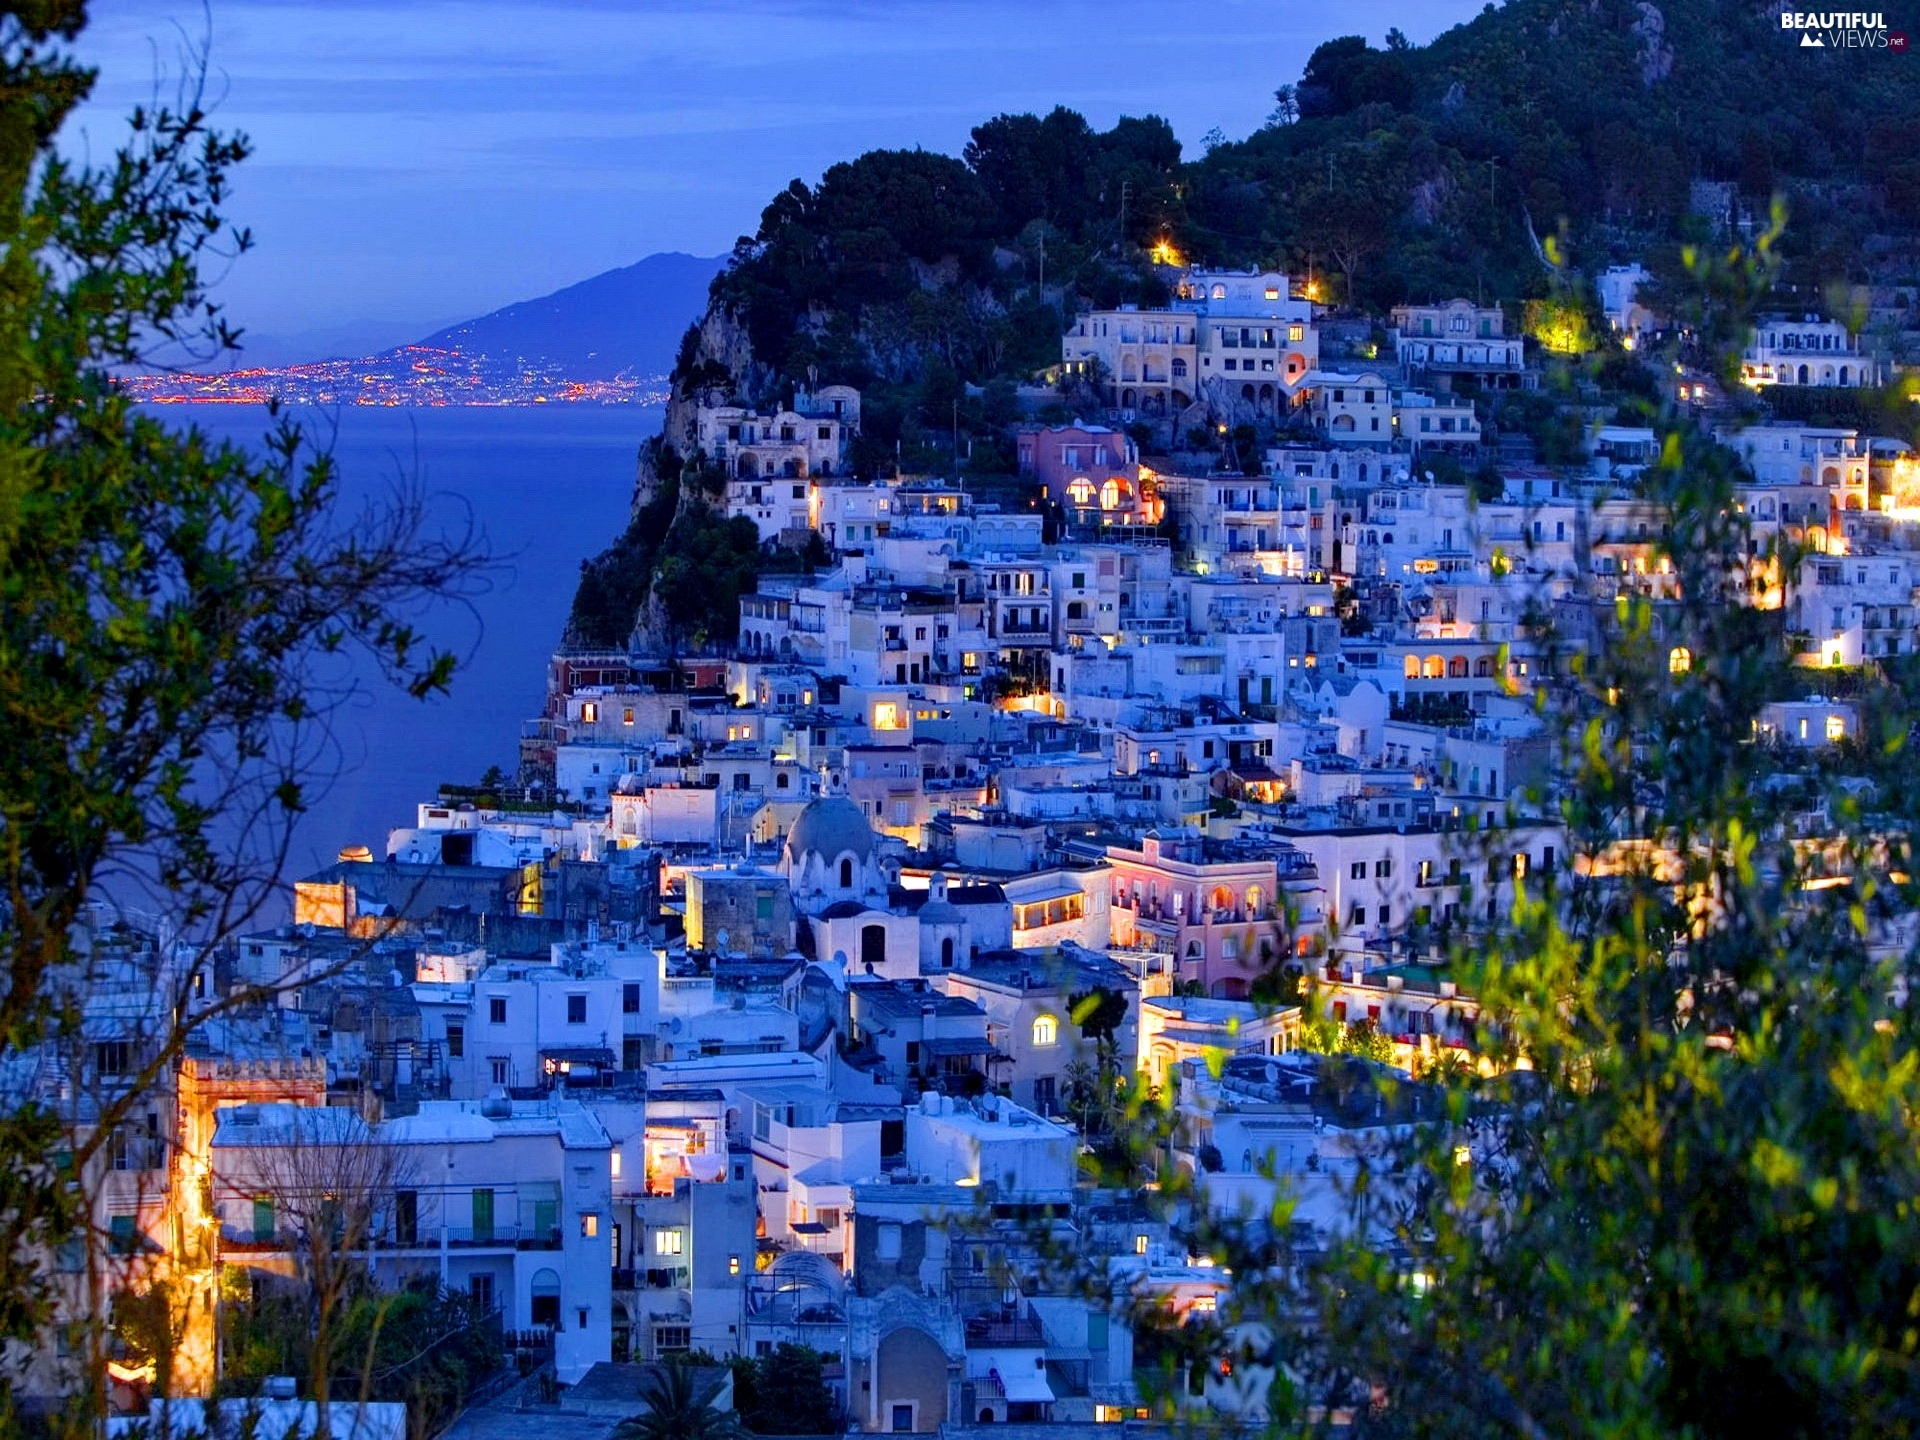 Houses, Island, Capri, Night - Beautiful views wallpapers ...